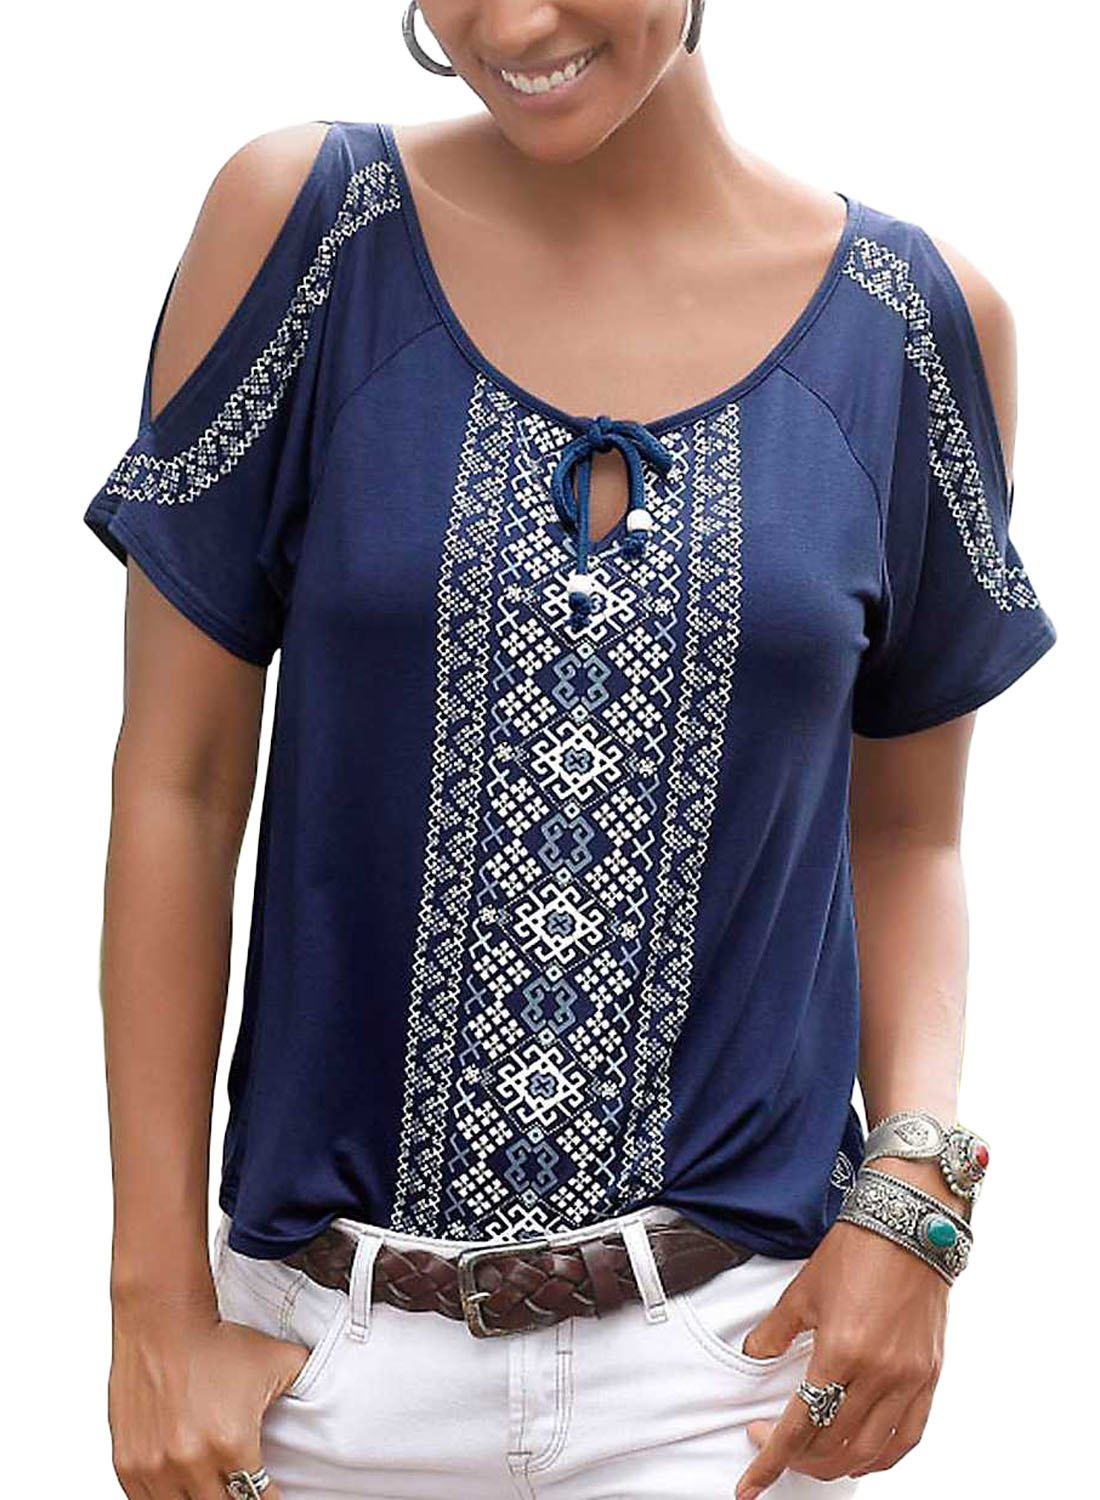 Chase Secret Womens Summer Ethnic Style Printed Tunic Top Bohemian Tie Front Loose Blouse Medium Navy